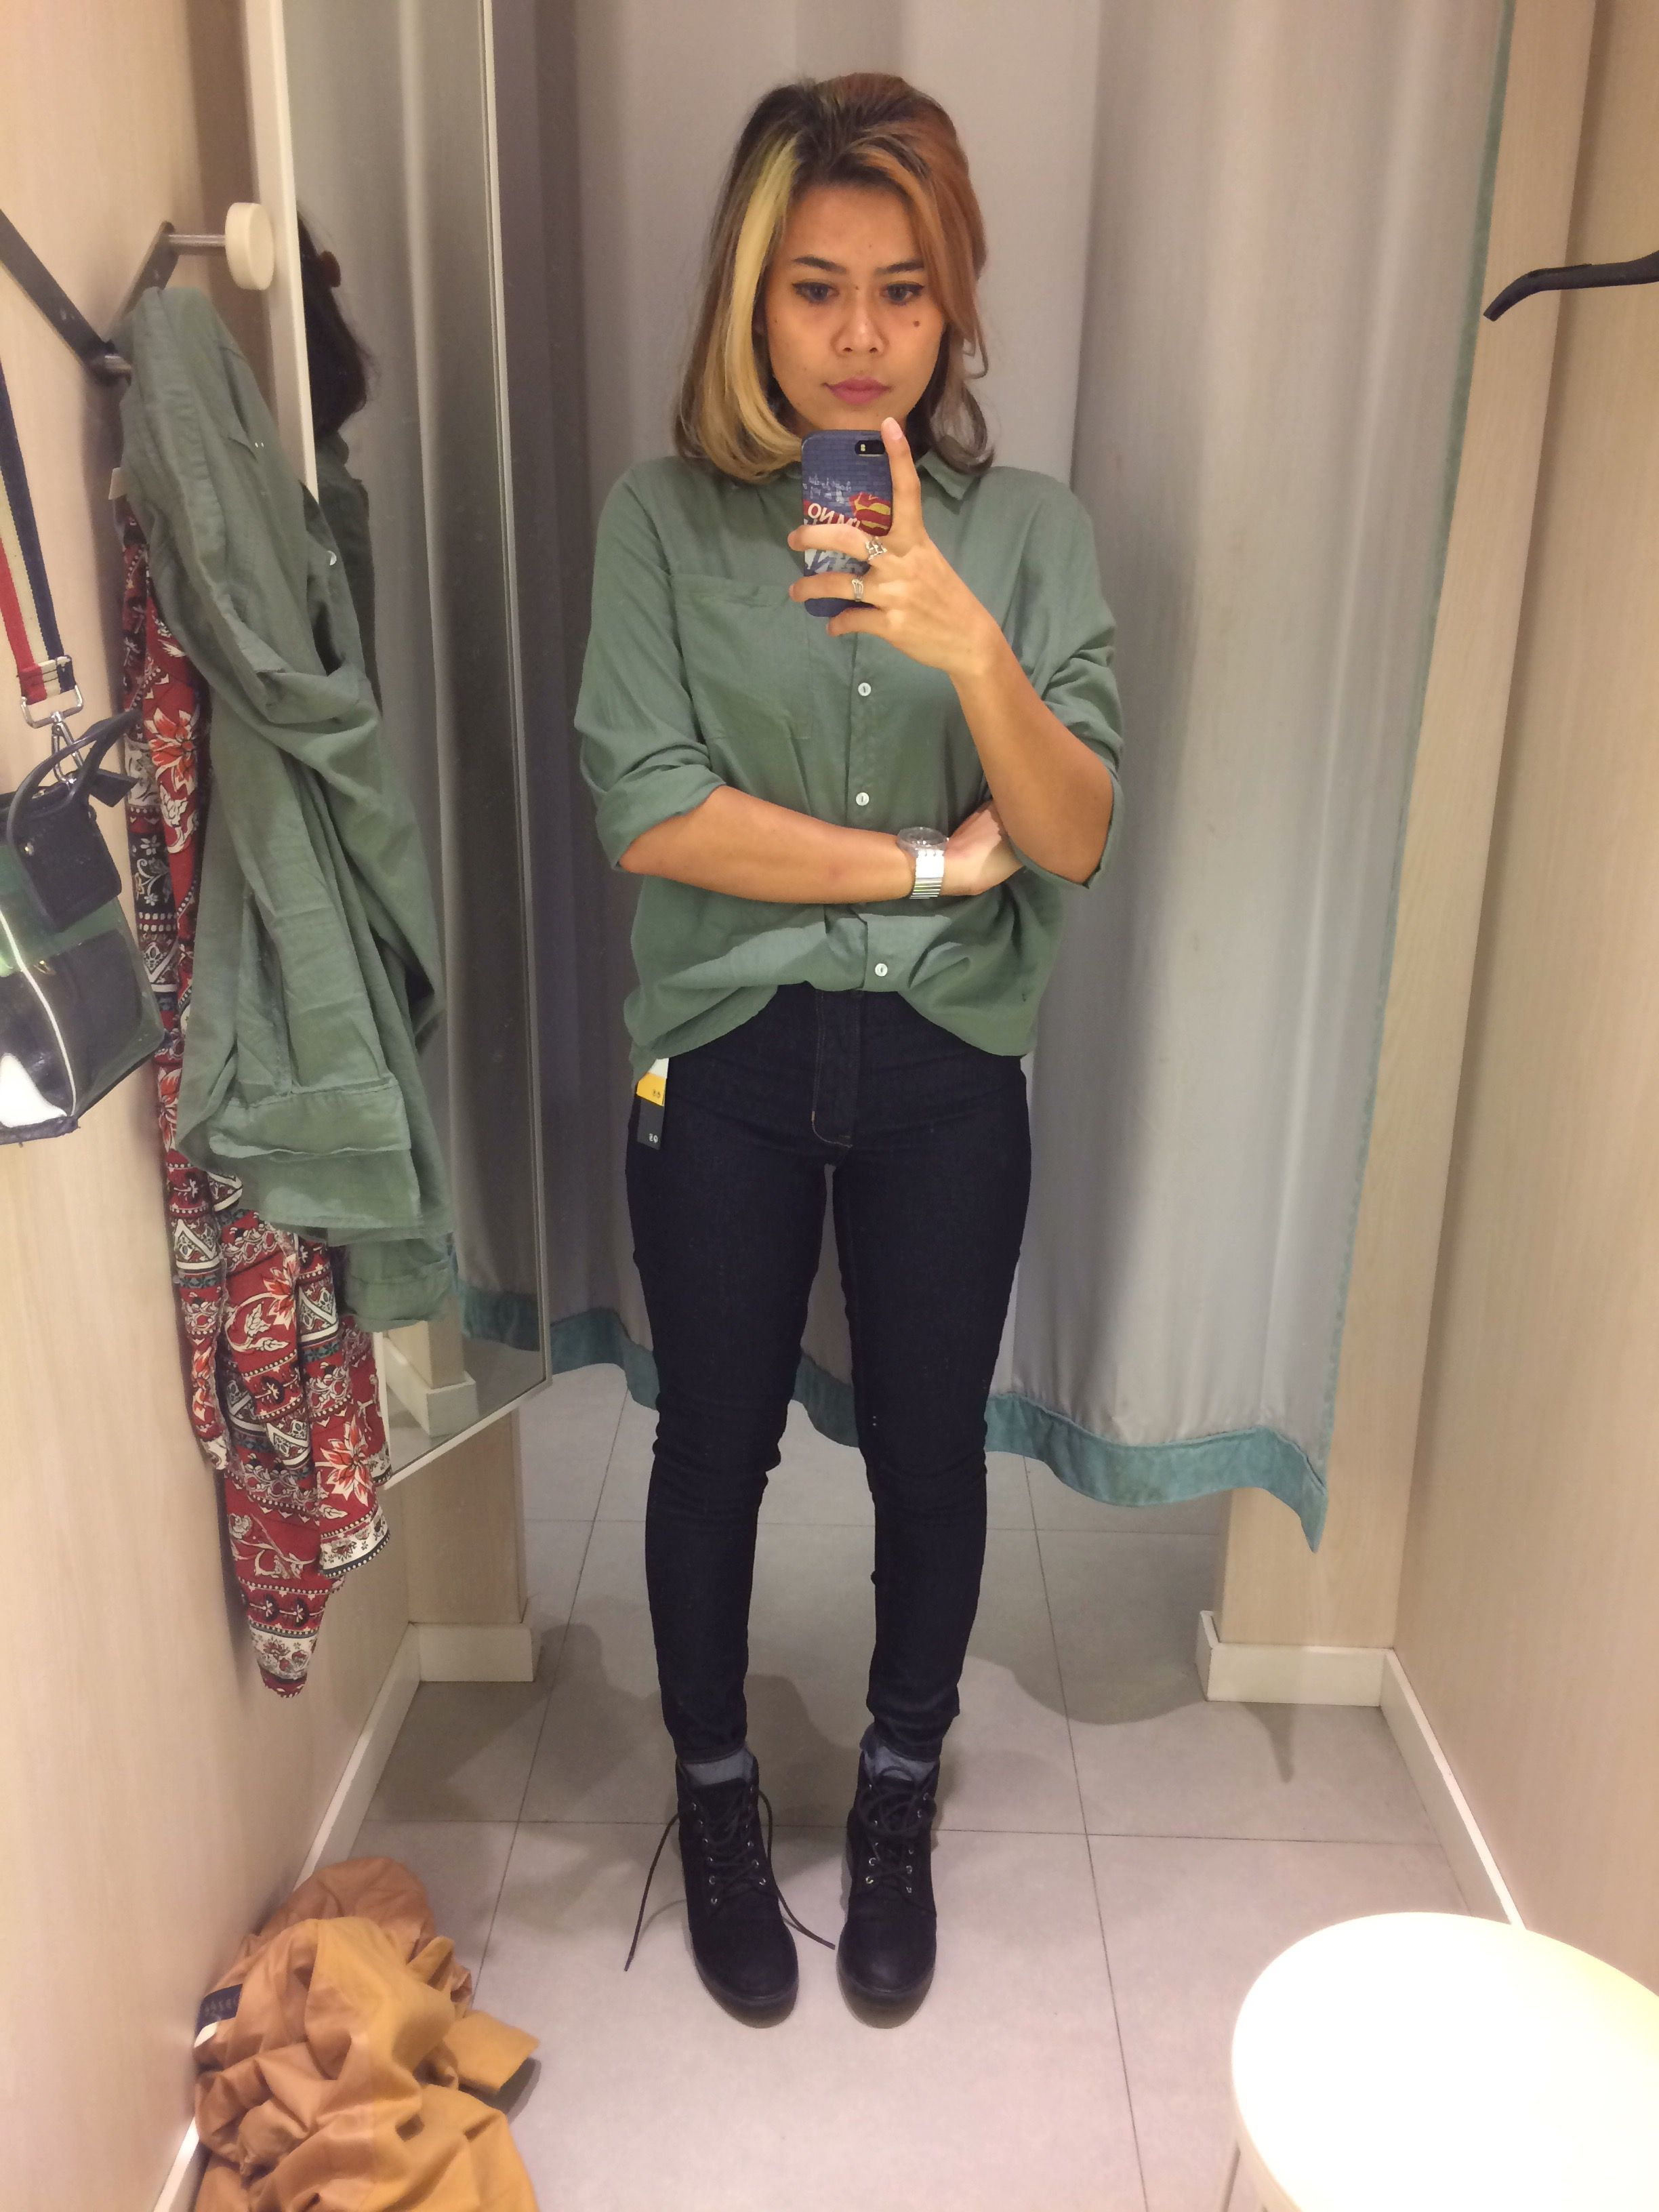 Fitting Room Selfie : fitting, selfie, Fitting, #changingroom, #style, #fashion, #casual, Fashion,, Daily, Fashion, Advice